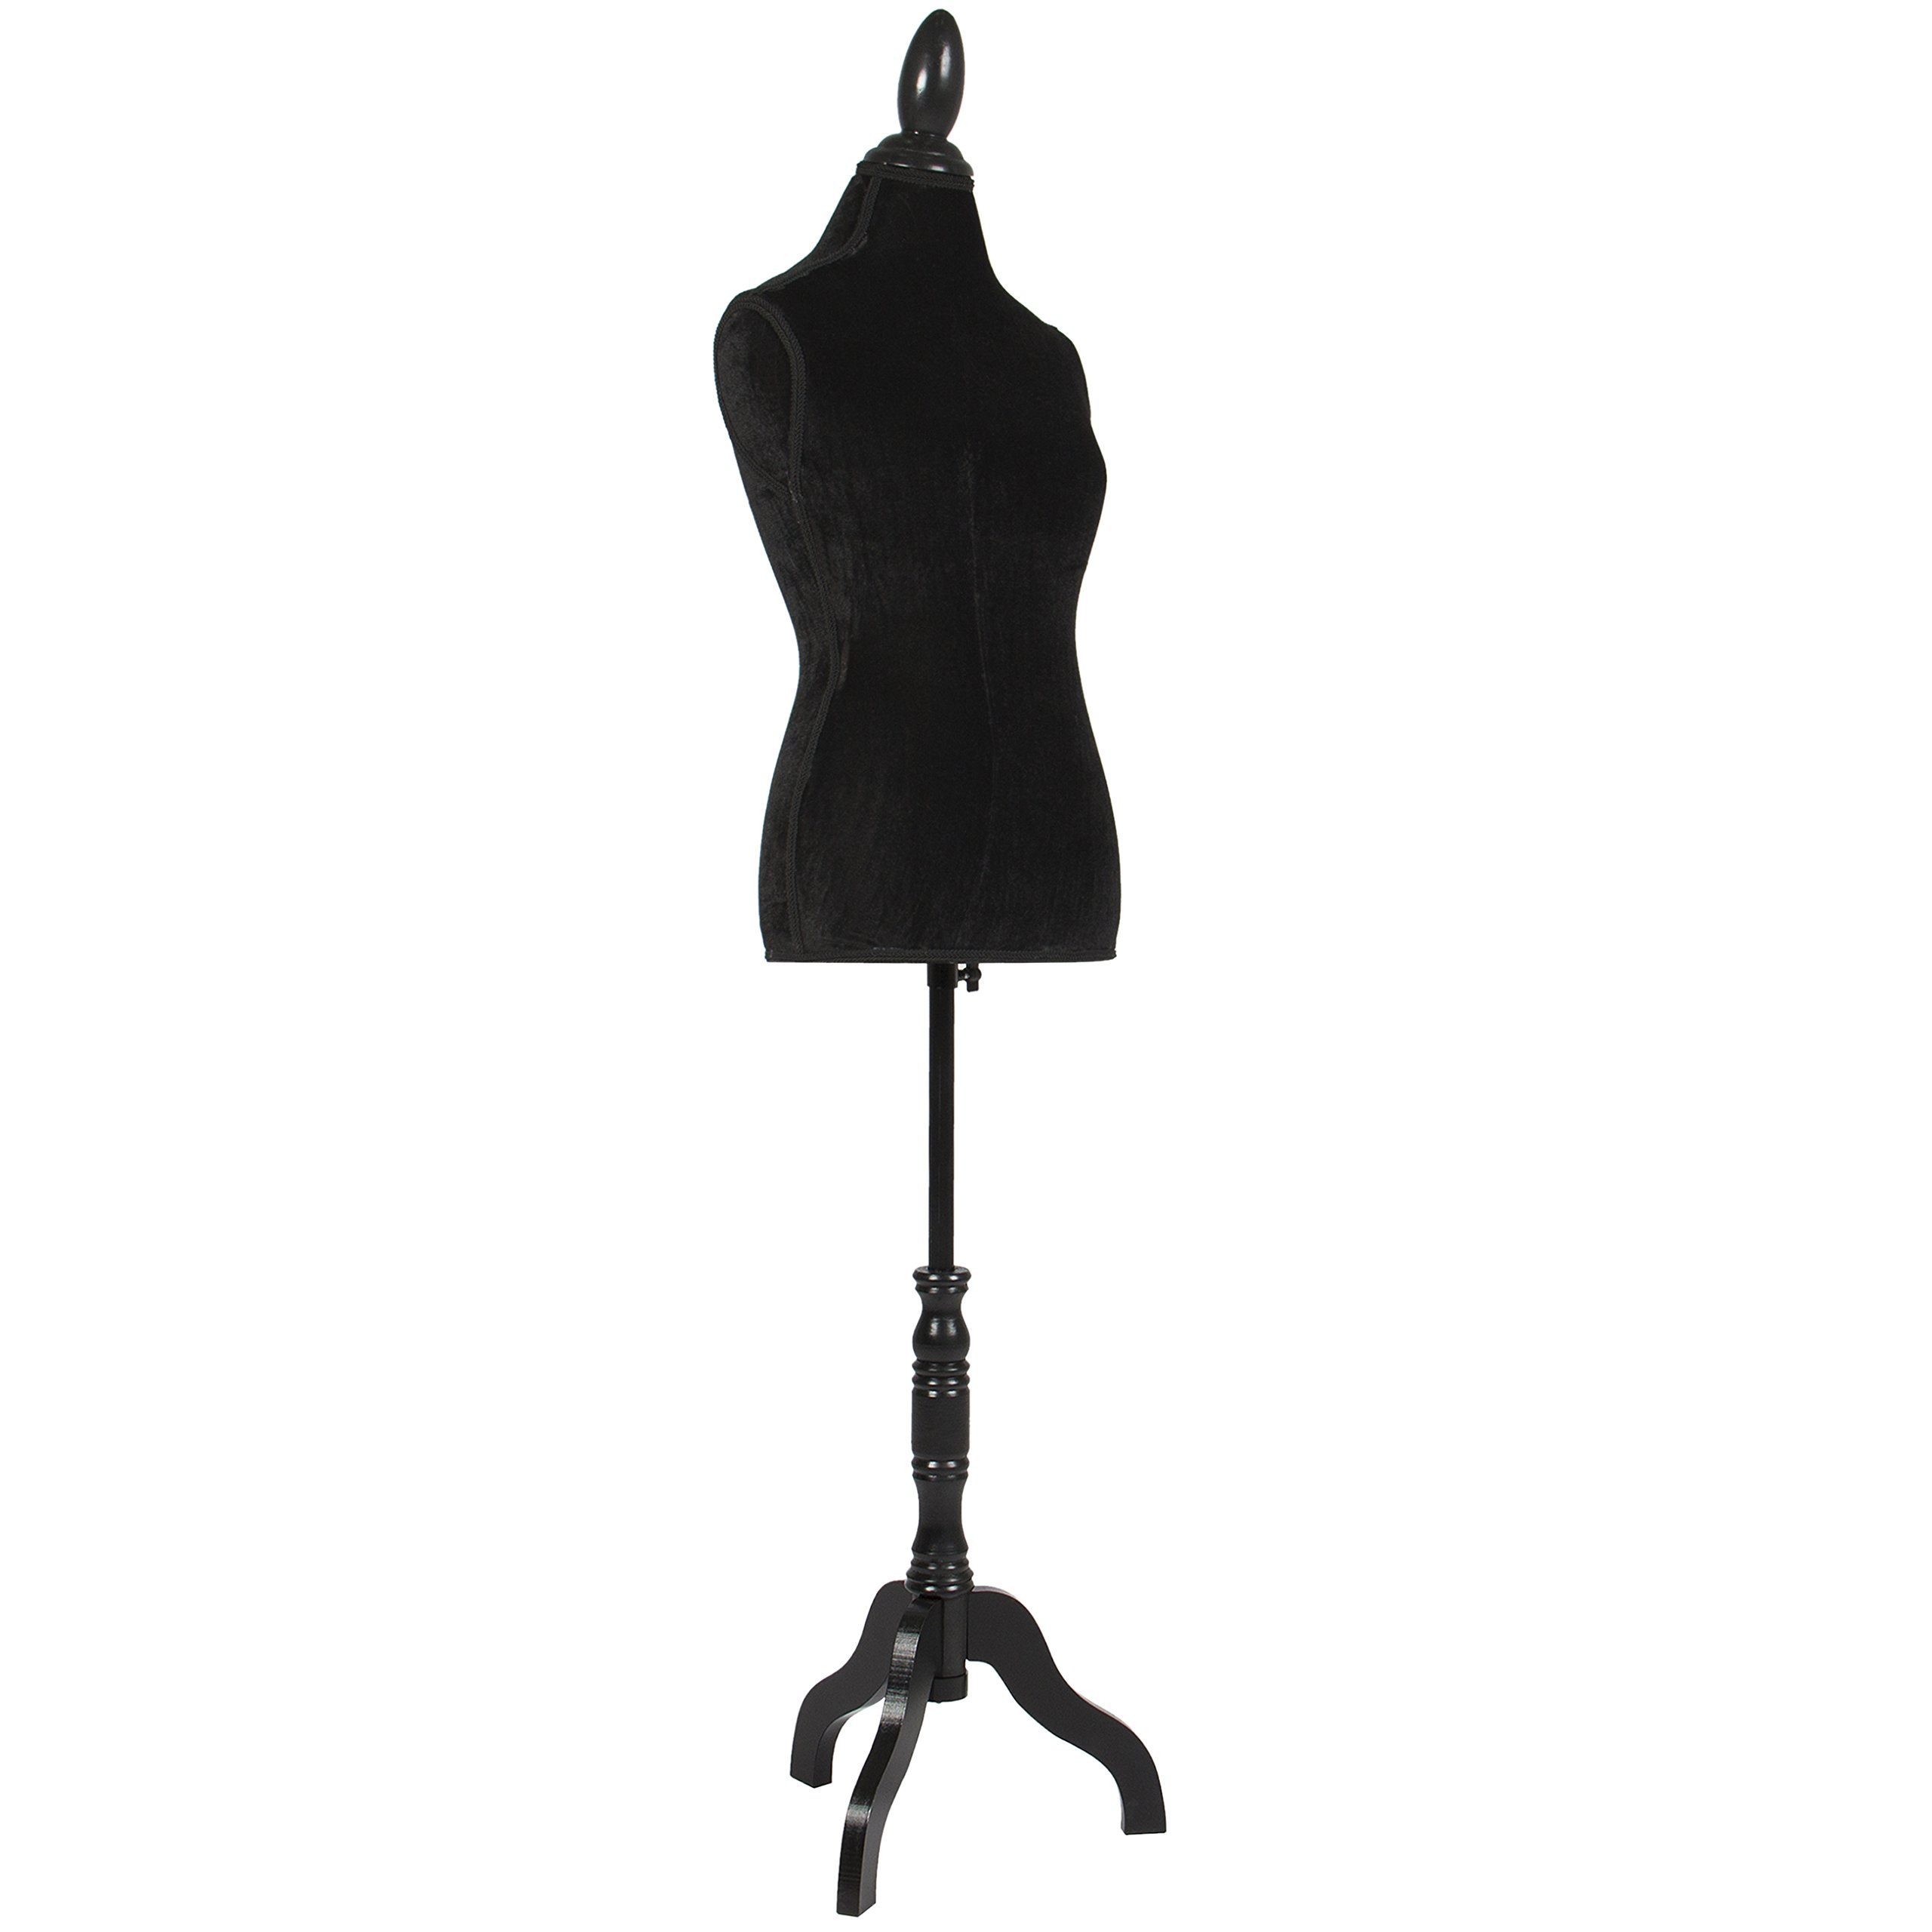 Best Choice Products Female Mannequin Torso Display w/Wooden Tripod Stand, Adjustable Height - Black by Best Choice Products